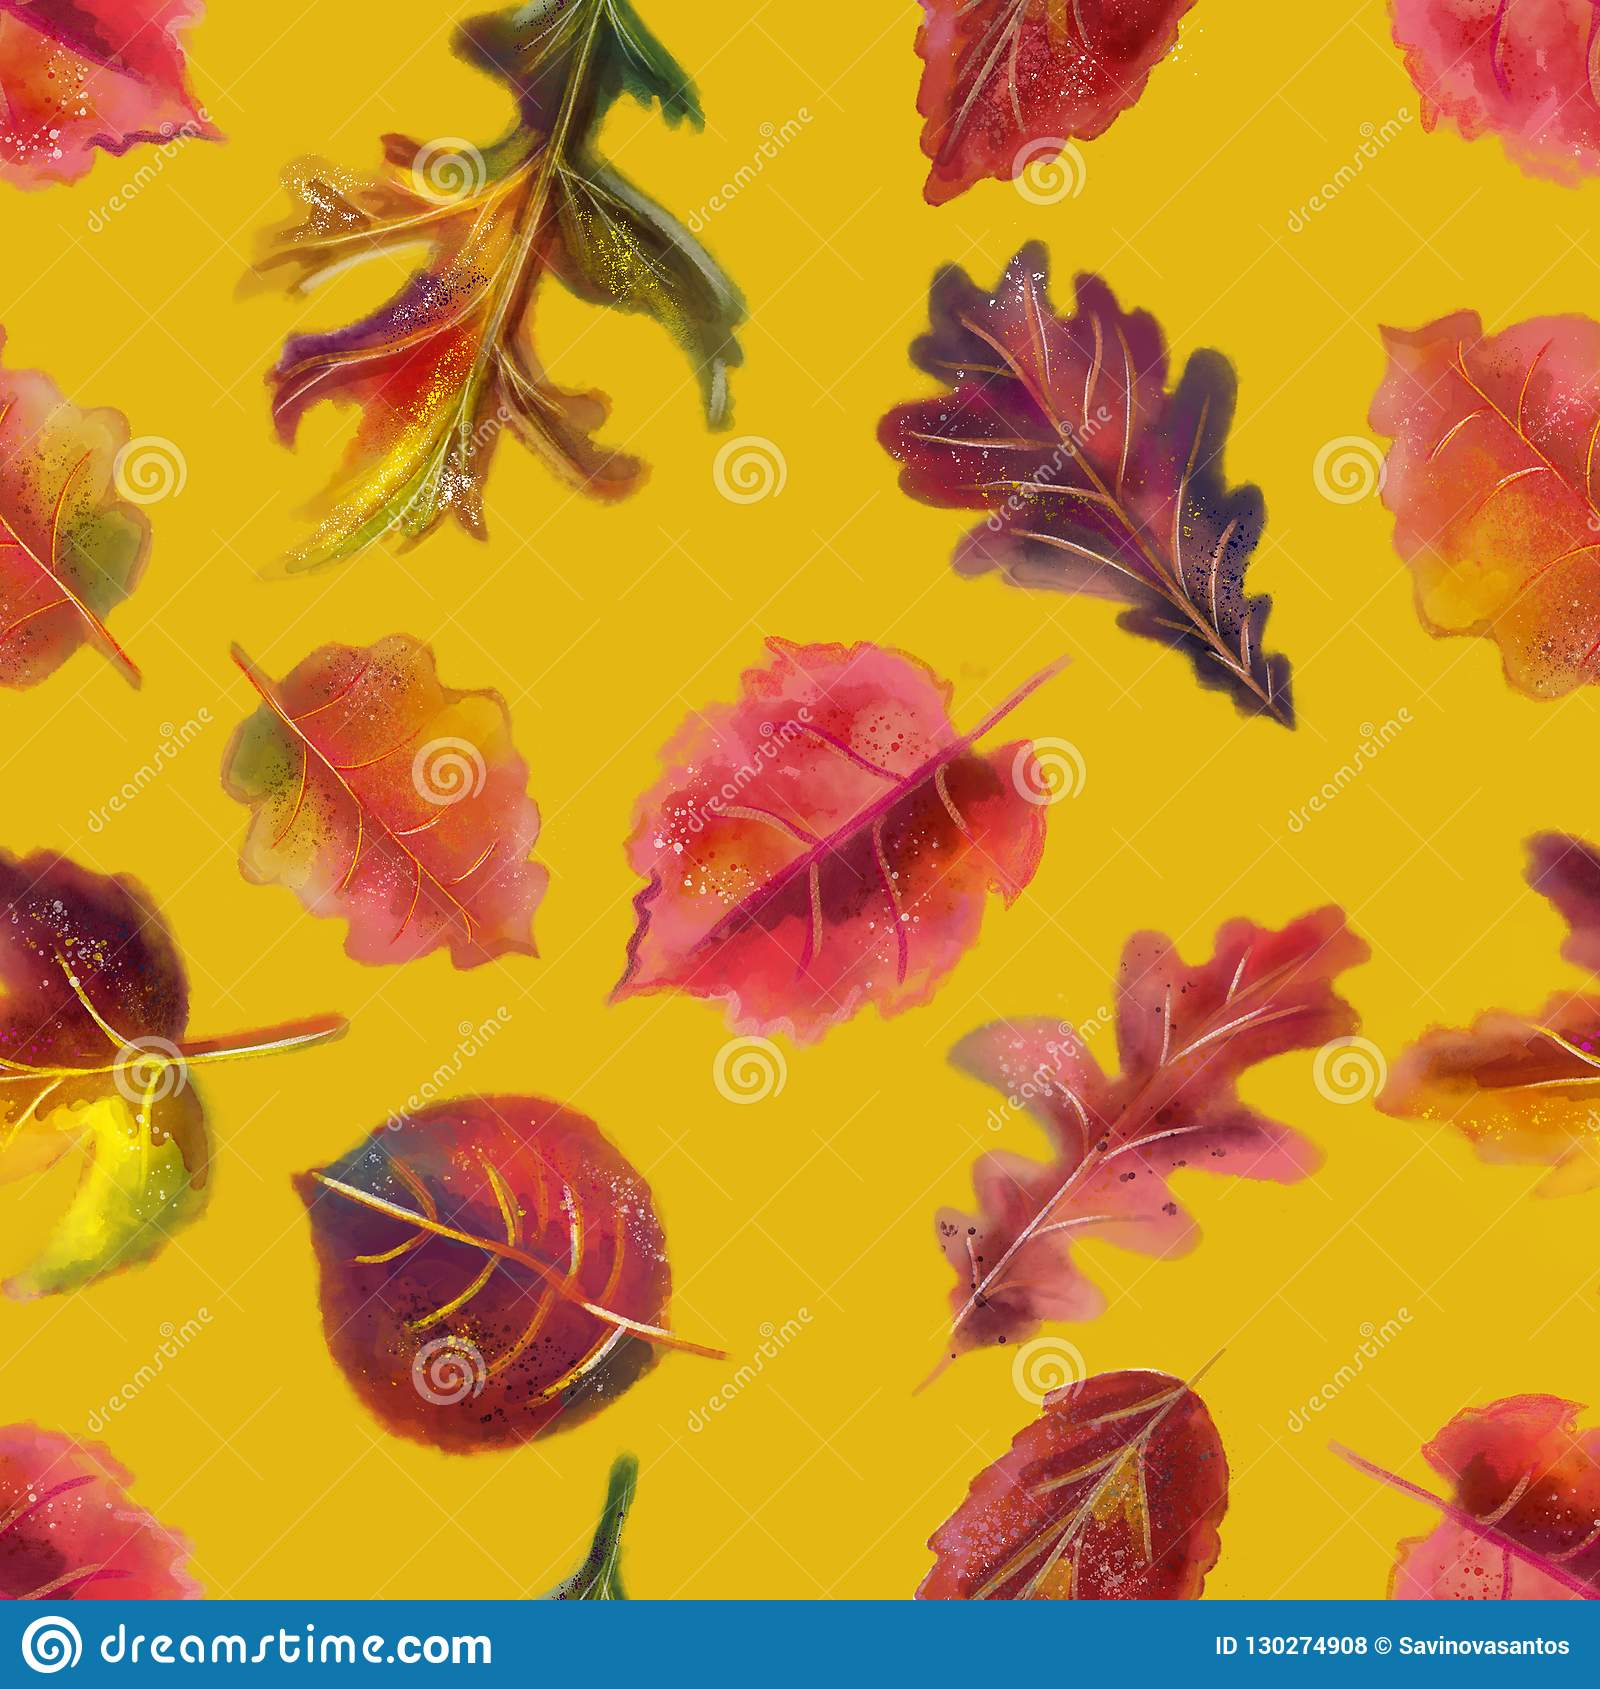 Hand drawn watercolor colorful autumn seamless pattern